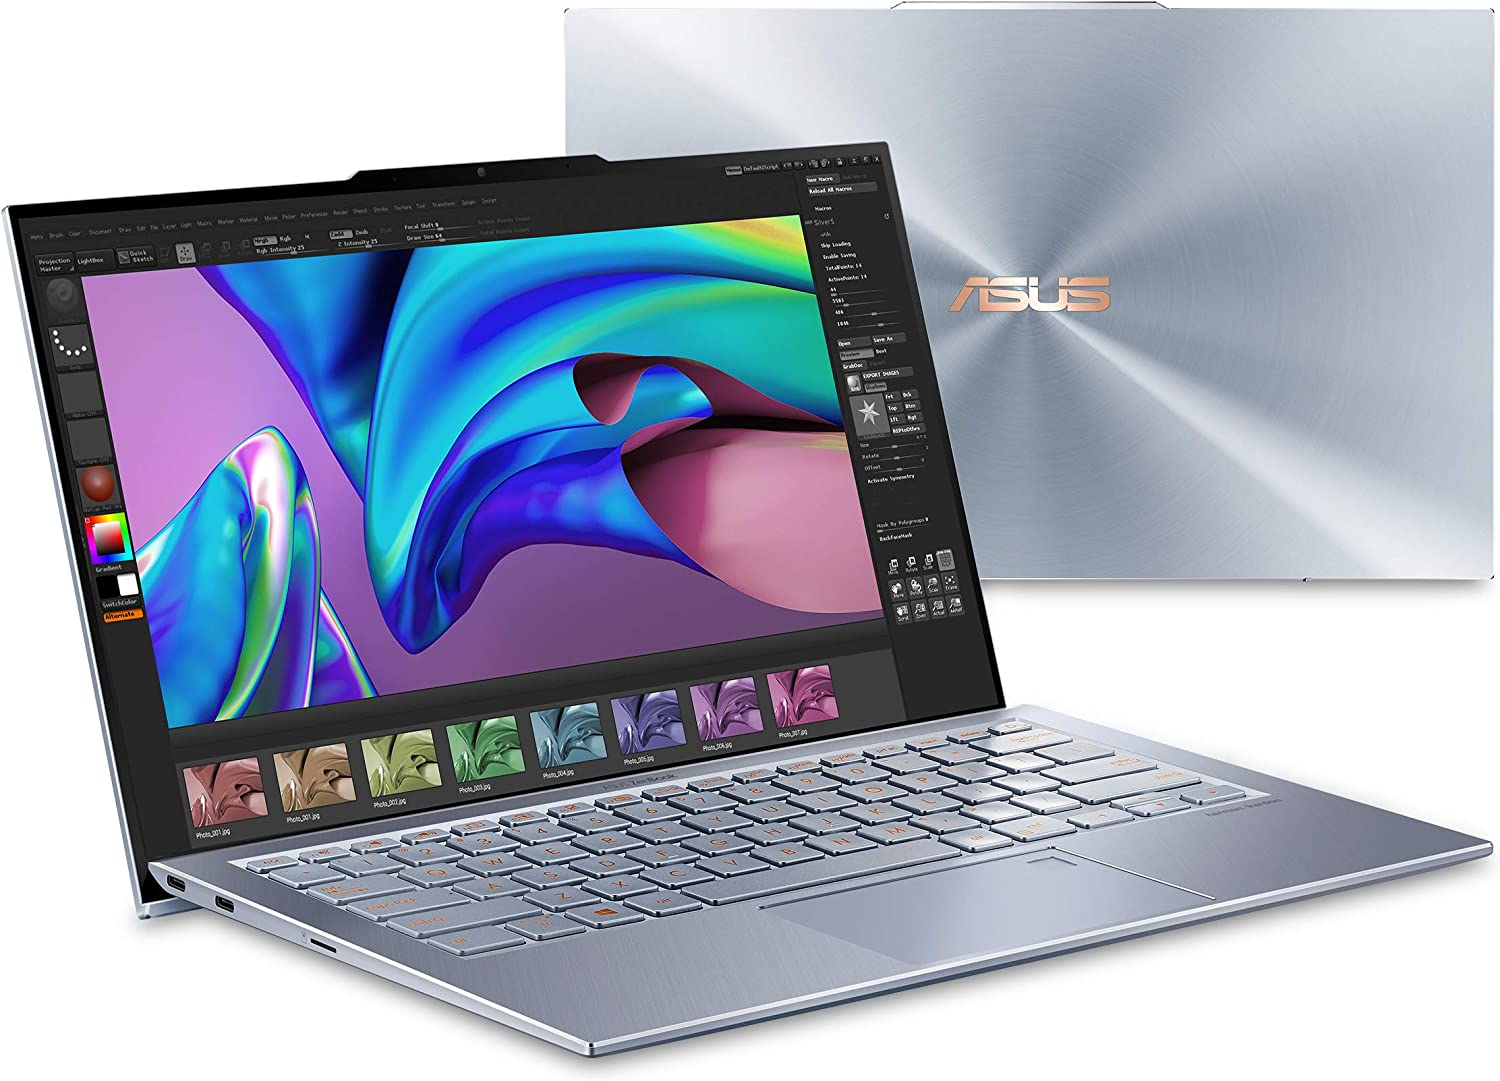 "Asus ZenBook S13 Ultra Thin & Light Laptop, 13.9"" FHD, Intel Core i7-8565U CPU, GeForce MX150, 16GB RAM, 512GB PCIe SSD, Windows 10 Pro, Silver Blue, UX392FN-XS77"